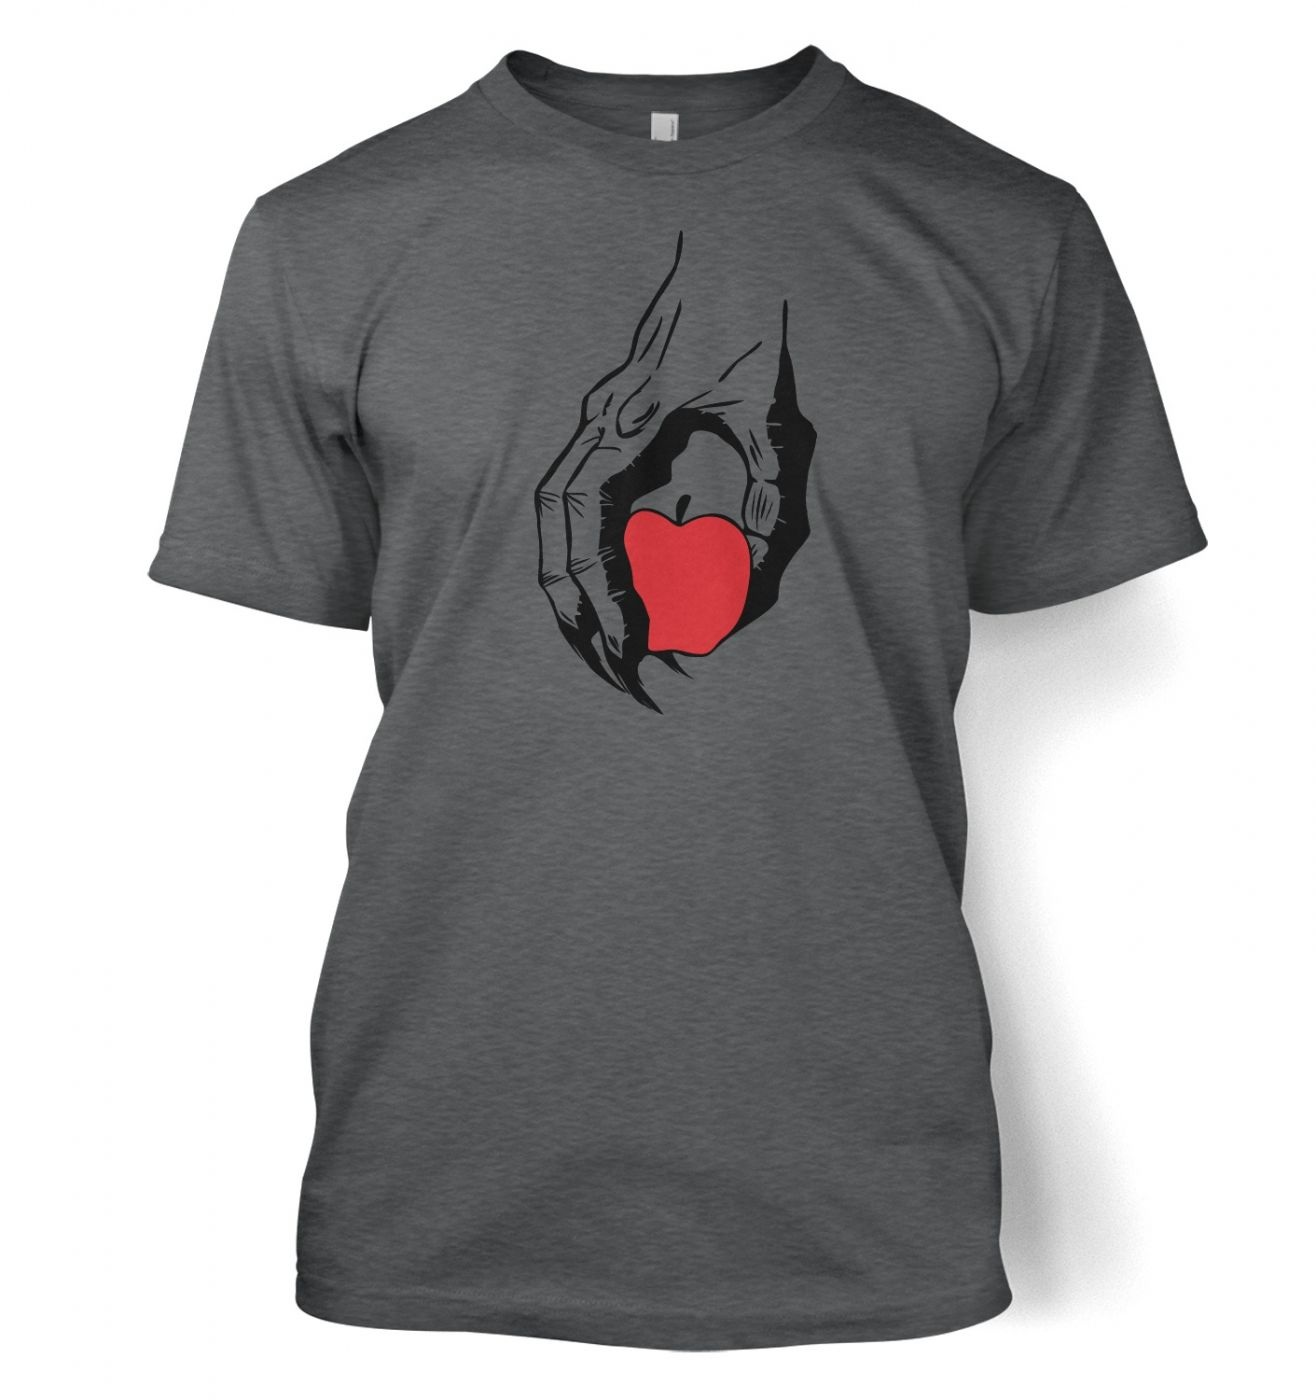 Shinigami Hand - T-Shirt